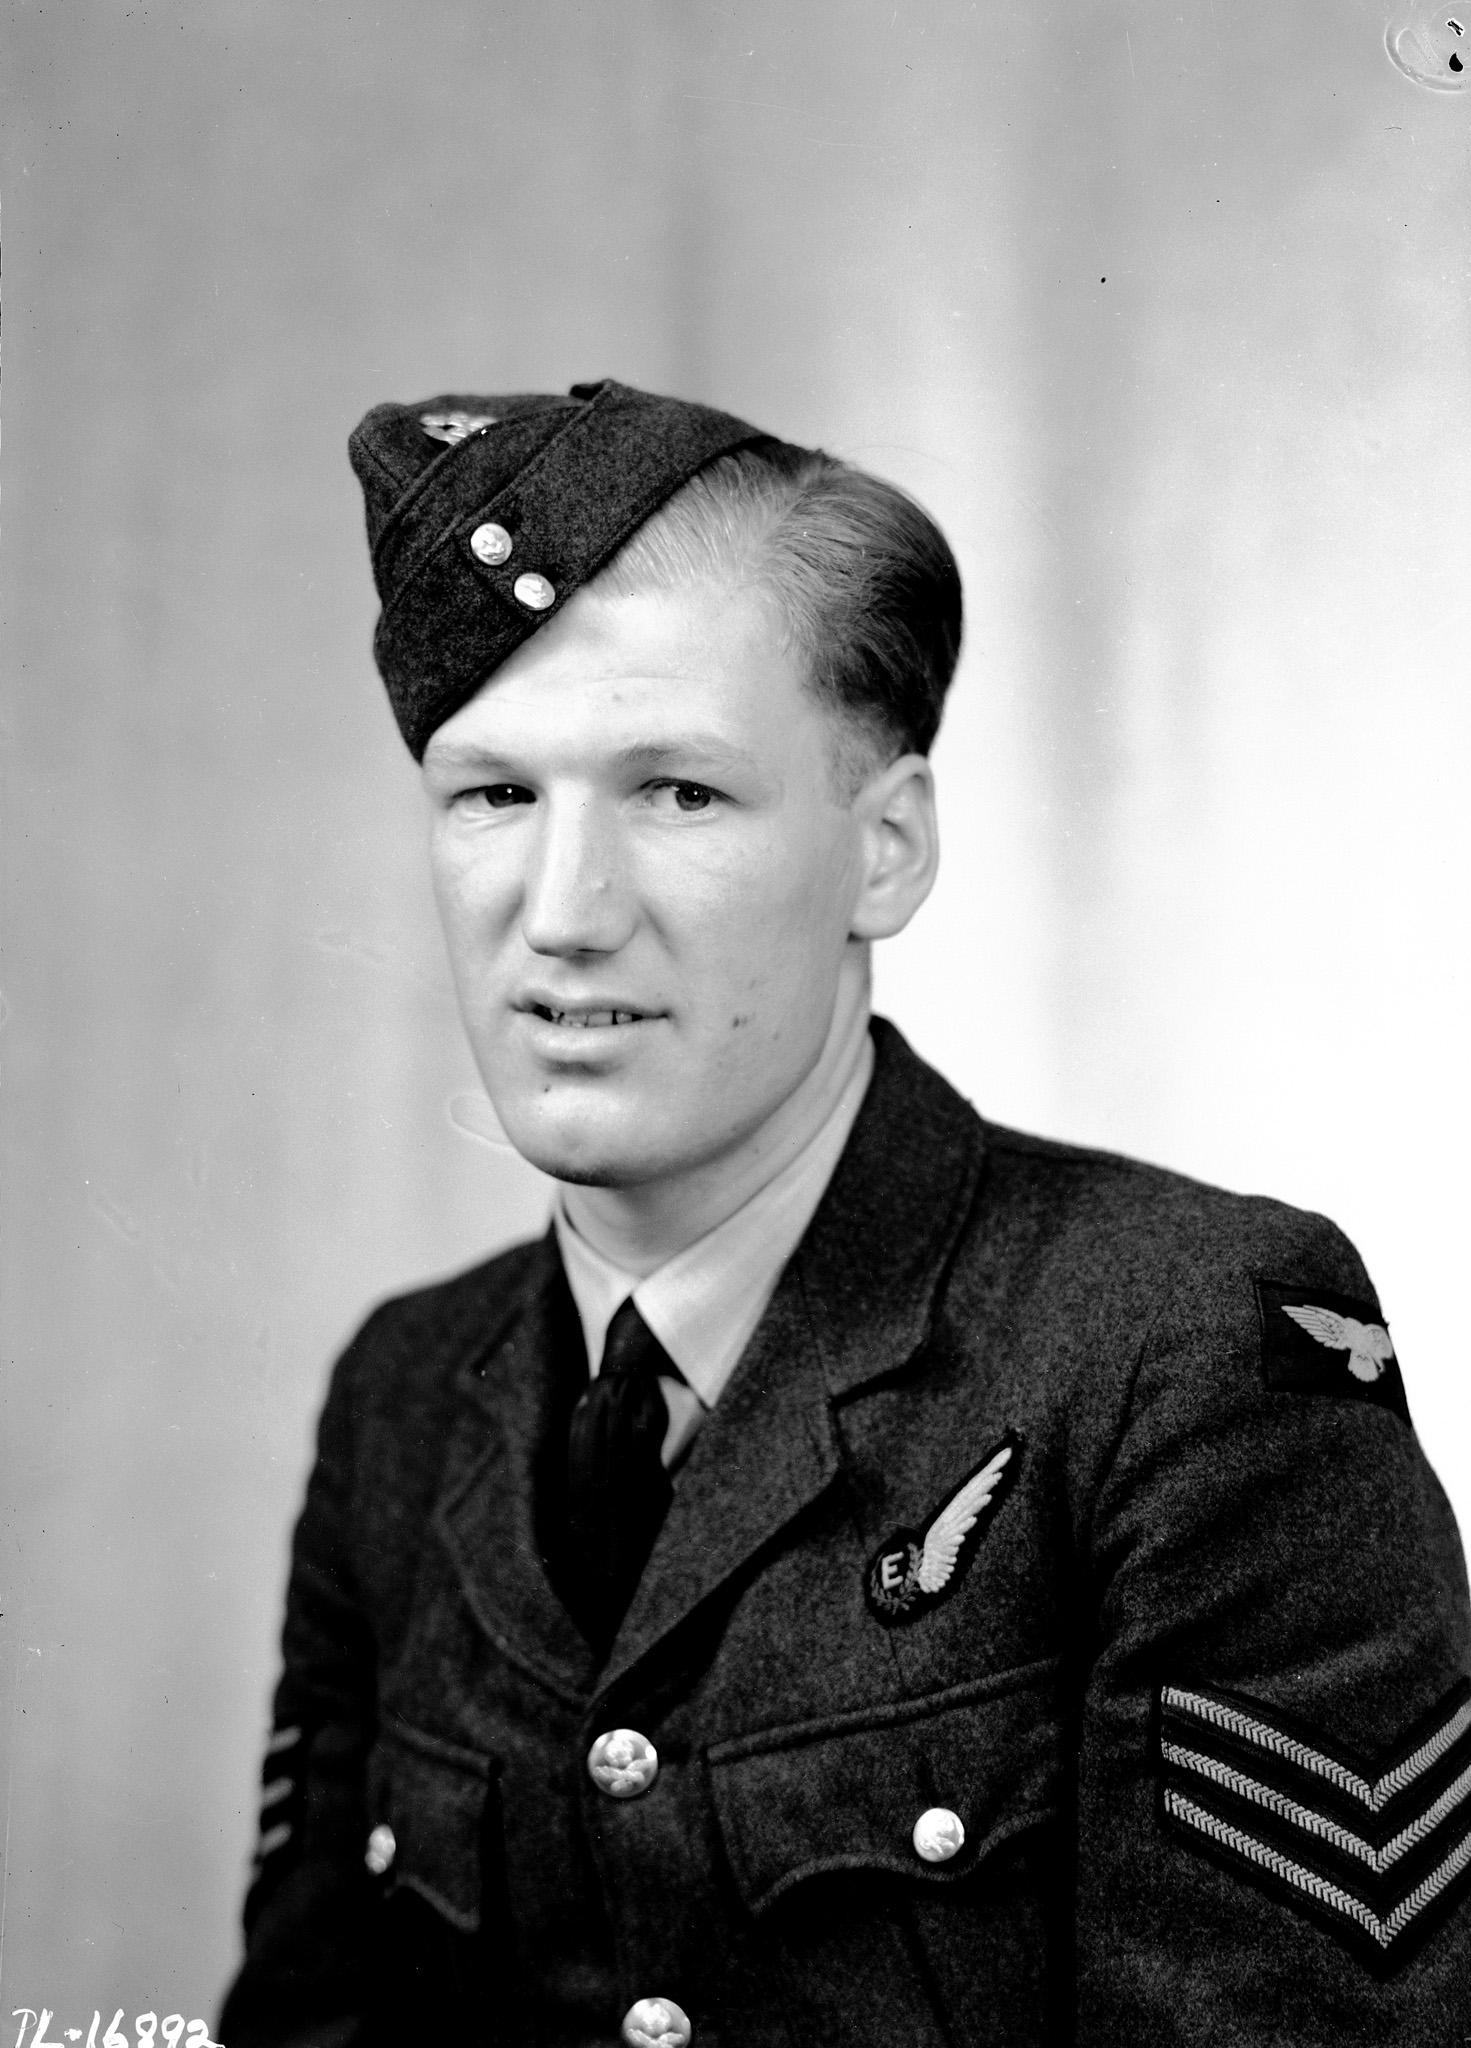 Sergeant William Radcliffe, RCAF, was photographed in London, England, shortly after the Dambusters raid. PHOTO: DND